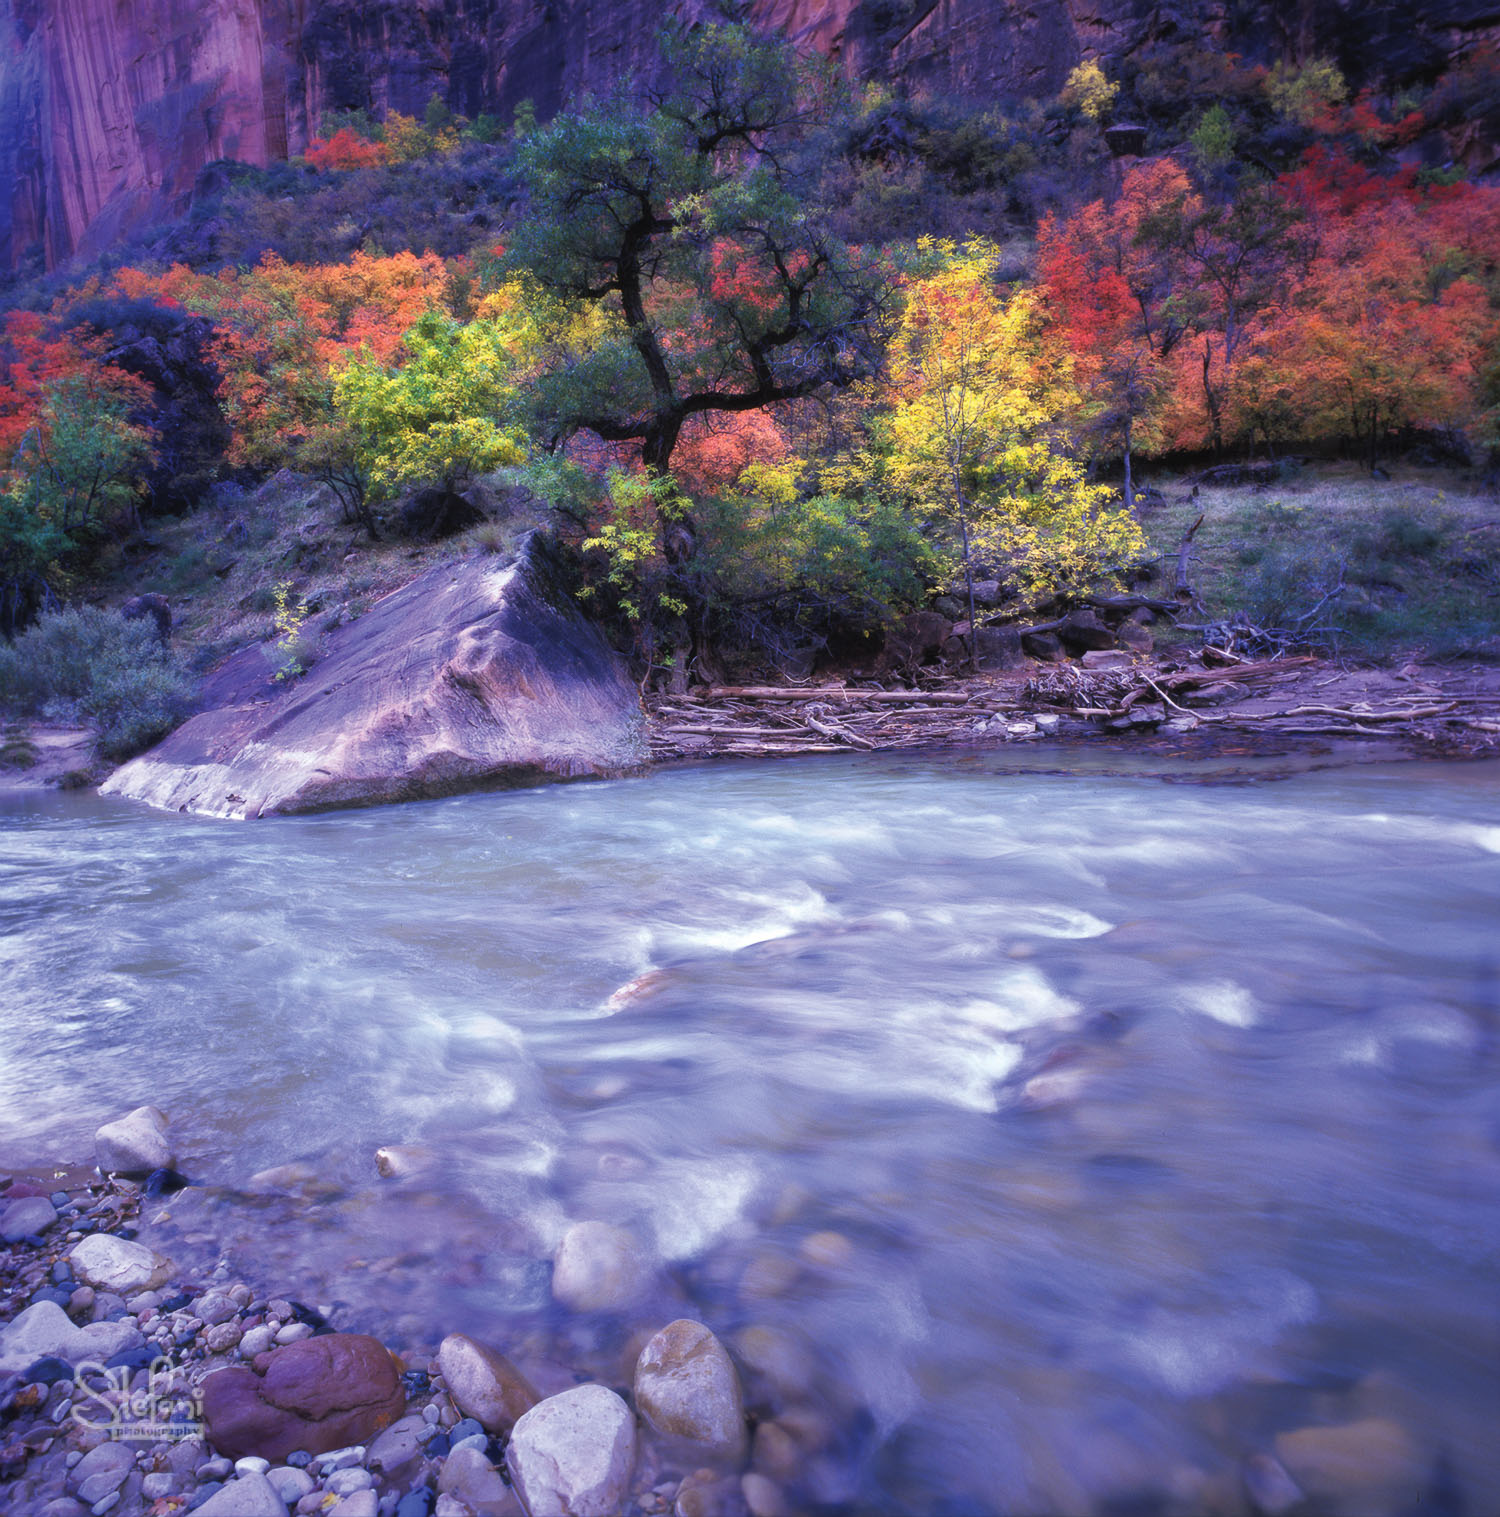 VIRGIN RIVER ZION